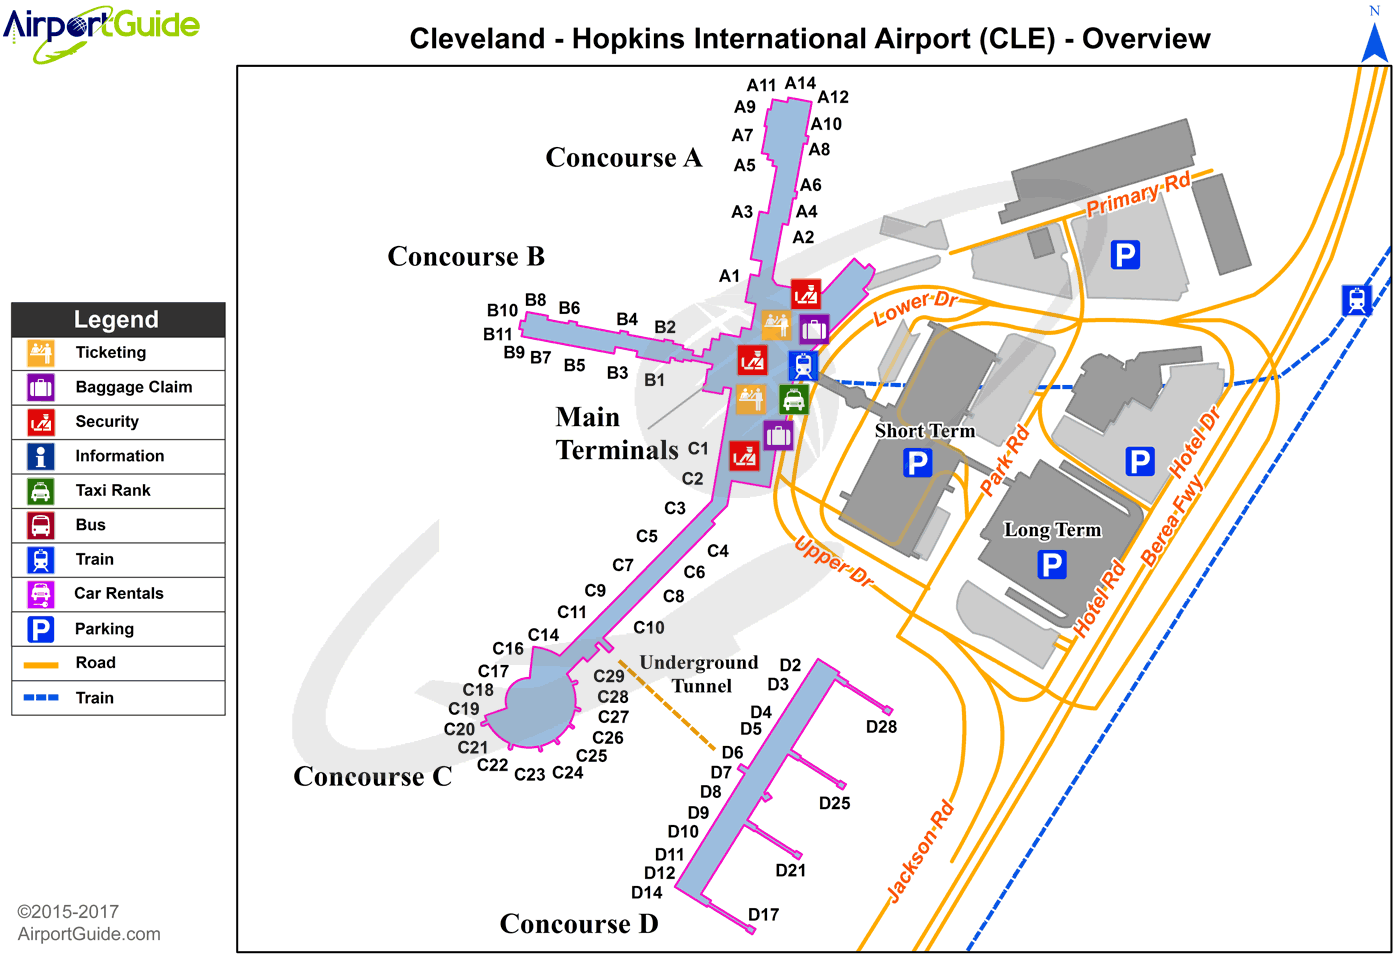 Cleveland - Tri-City (CLE) Airport Terminal Map - Overview